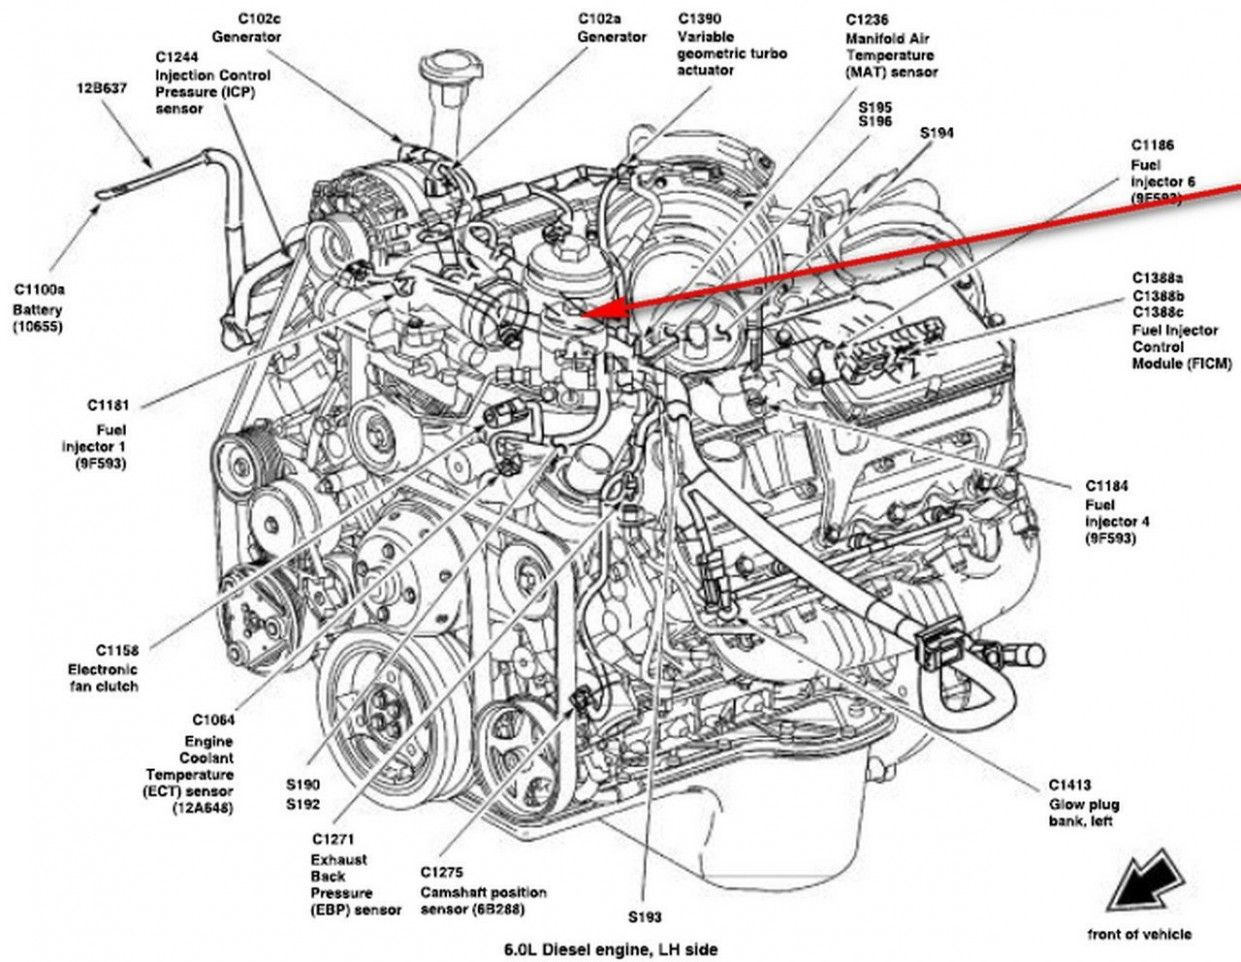 Diagram Of Parts Of An Engine Diagram Of Parts Of An